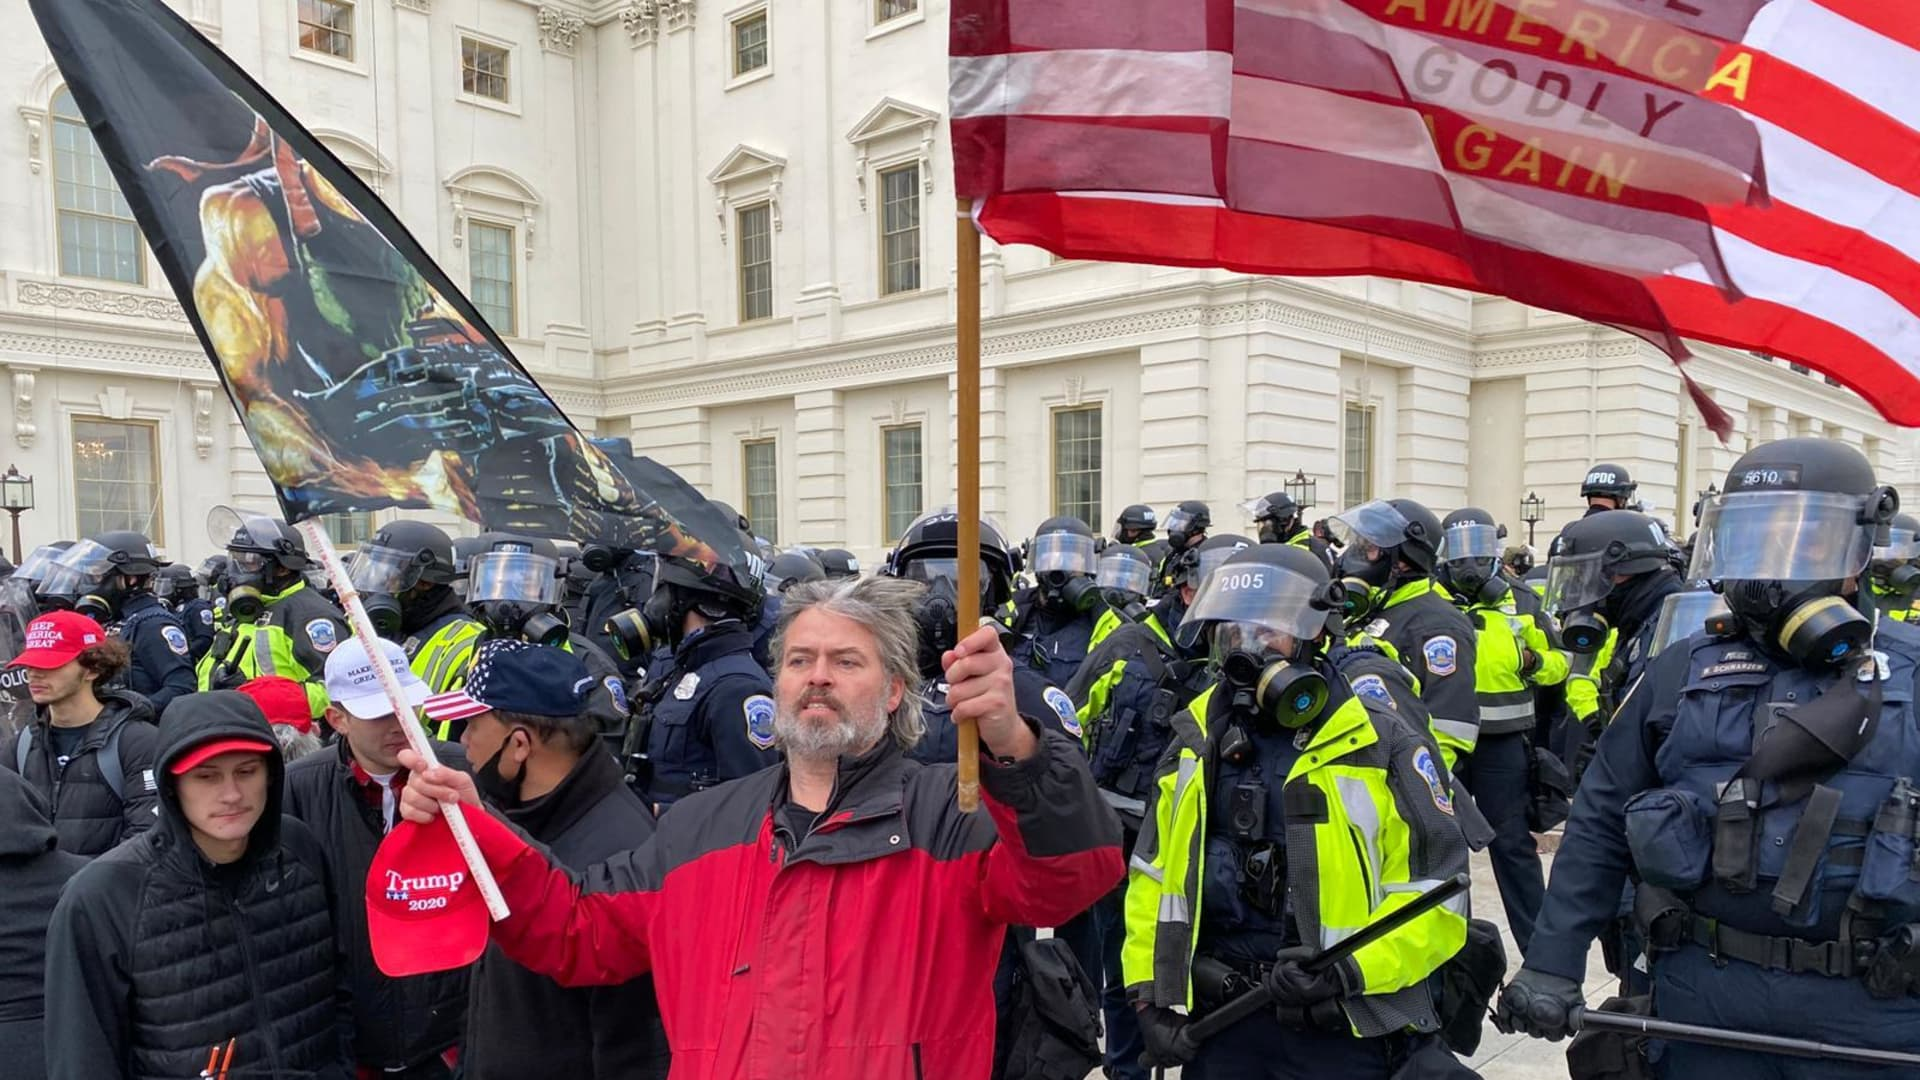 WASHINGTON D.C., USA - JANUARY 6: Security forces block the entrance after the US President Donald Trumps supporters breached the US Capitol security in Washington D.C., United States on January 06, 2021. Pro-Trump rioters stormed the US Capitol as lawmakers were set to sign off Wednesday on President-elect Joe Biden's electoral victory in what was supposed to be a routine process headed to Inauguration Day. (Photo by Tayfun Coskun/Anadolu Agency via Getty Images)